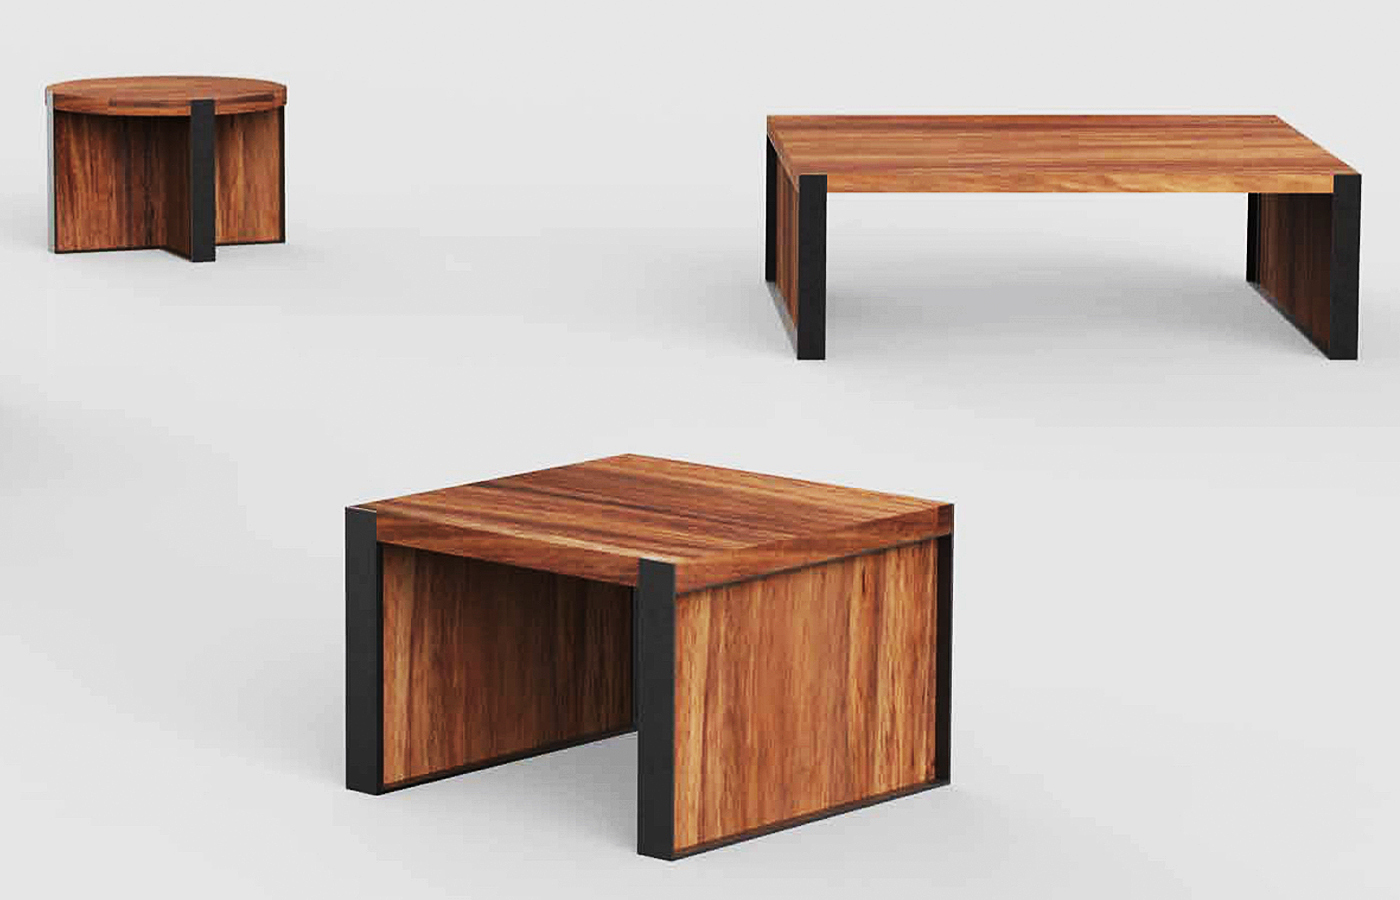 Metal & Wood Coffee Tables